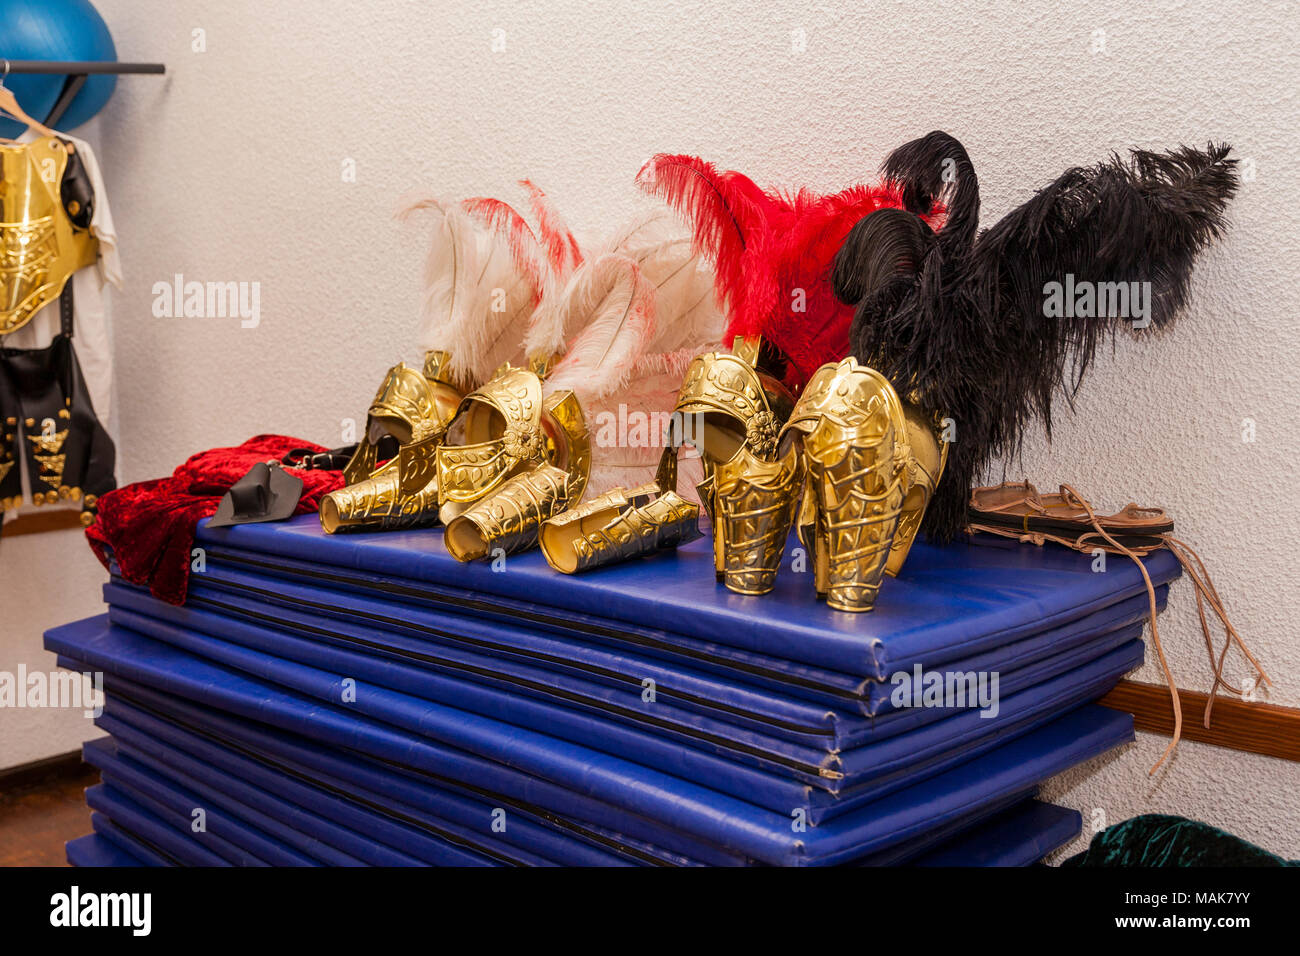 Brass coloured helmets with feathers in red, white and black, Roman soldier uniform headress in the dressing room for the Passion play, Adeje, Tenerif Stock Photo